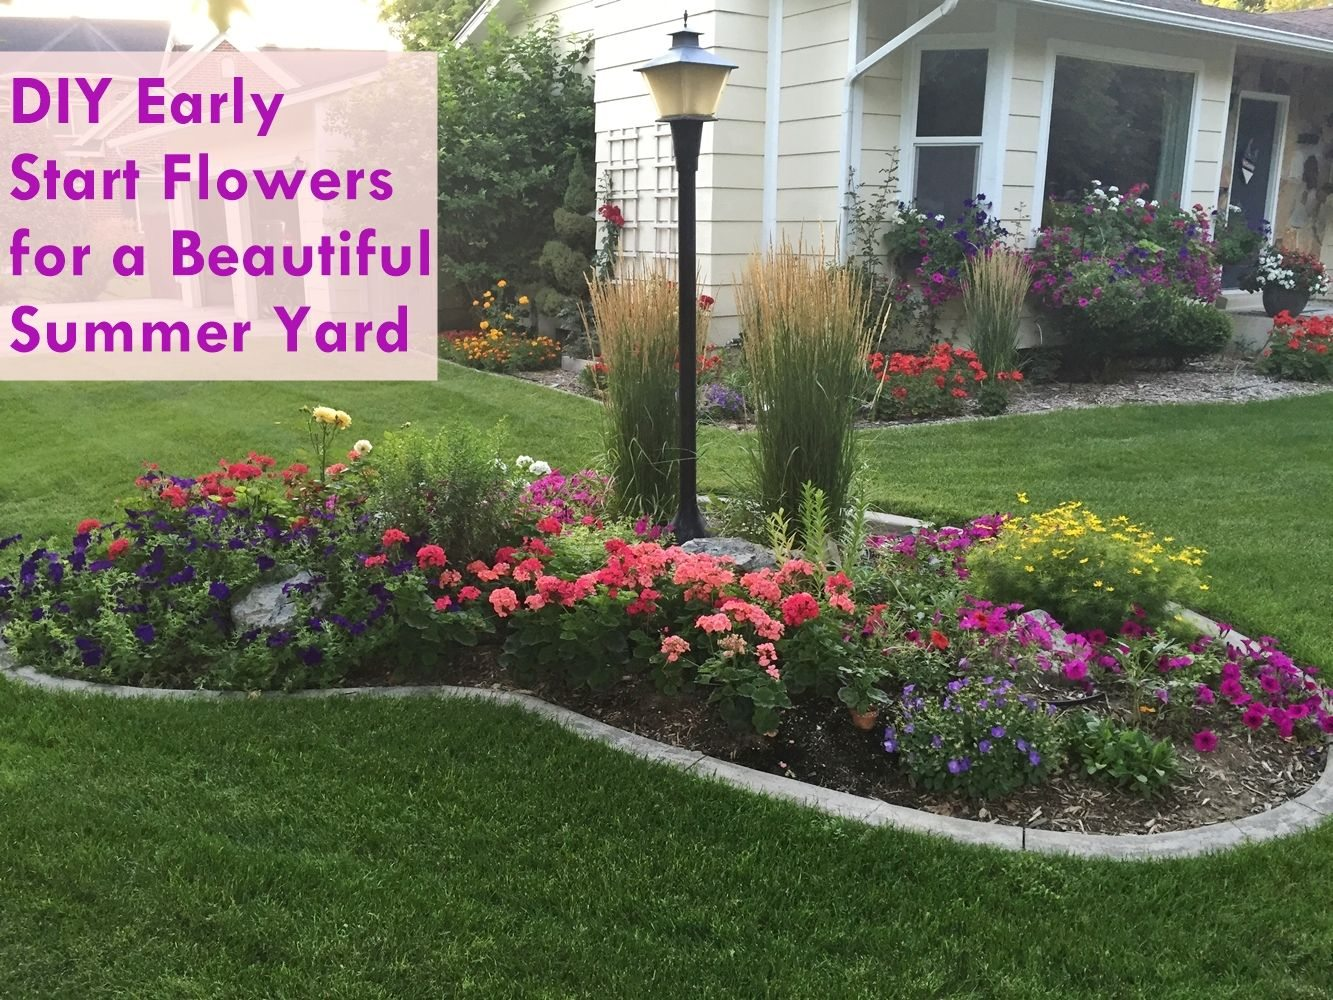 As You Wish Floral Design Early Spring Wedding At The Hy: DIY Early Start Flowers For Flower Boxes